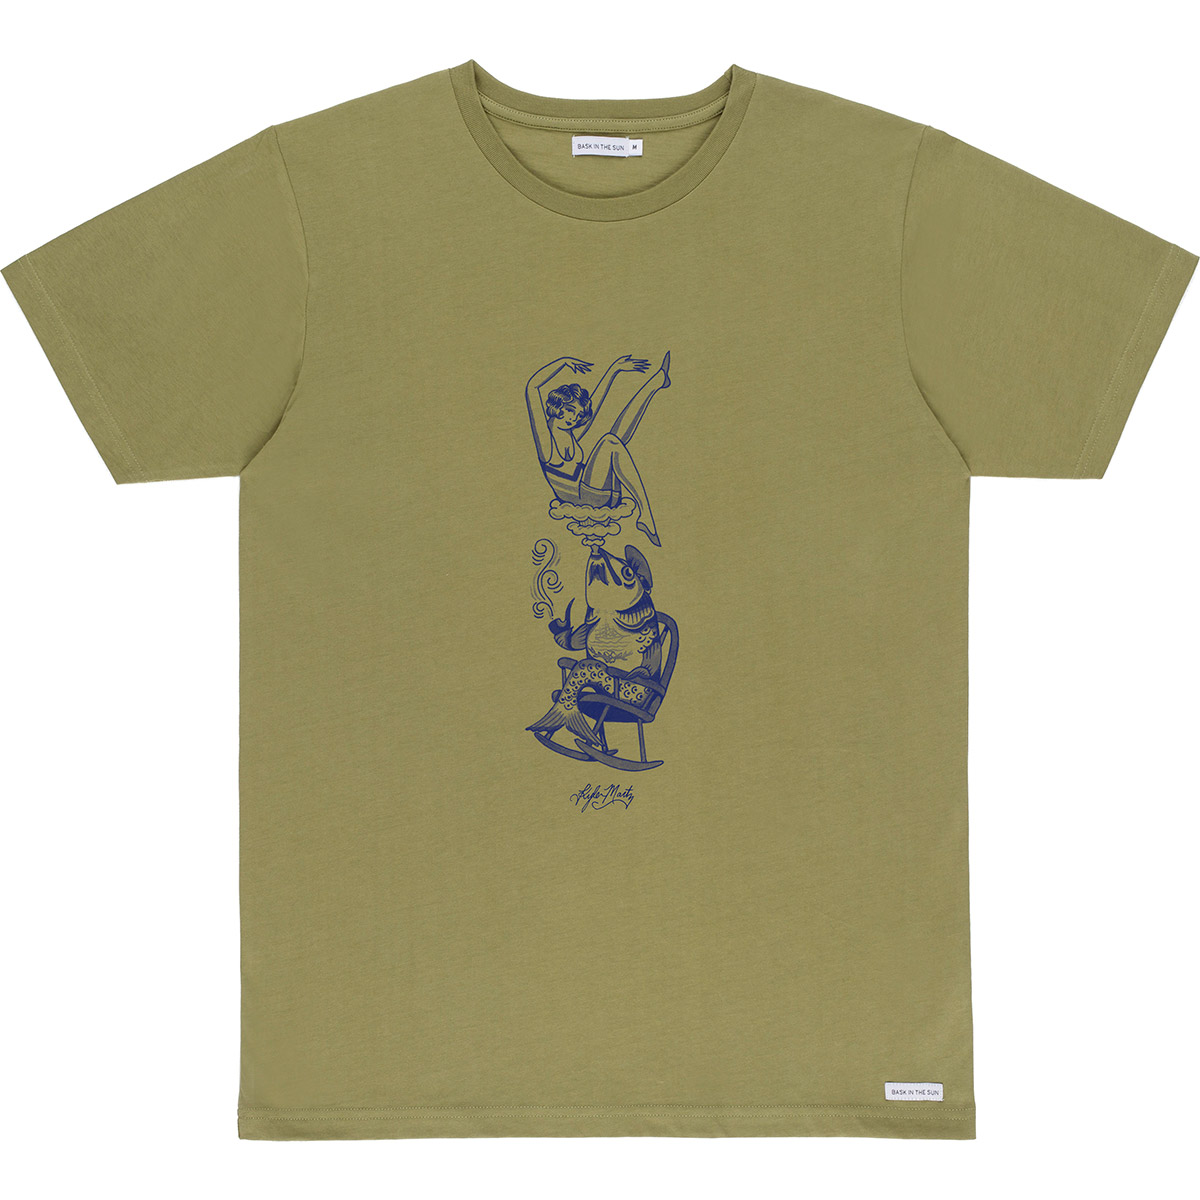 Bask in the Sun - T-shirt en coton bio kaki smoking fish